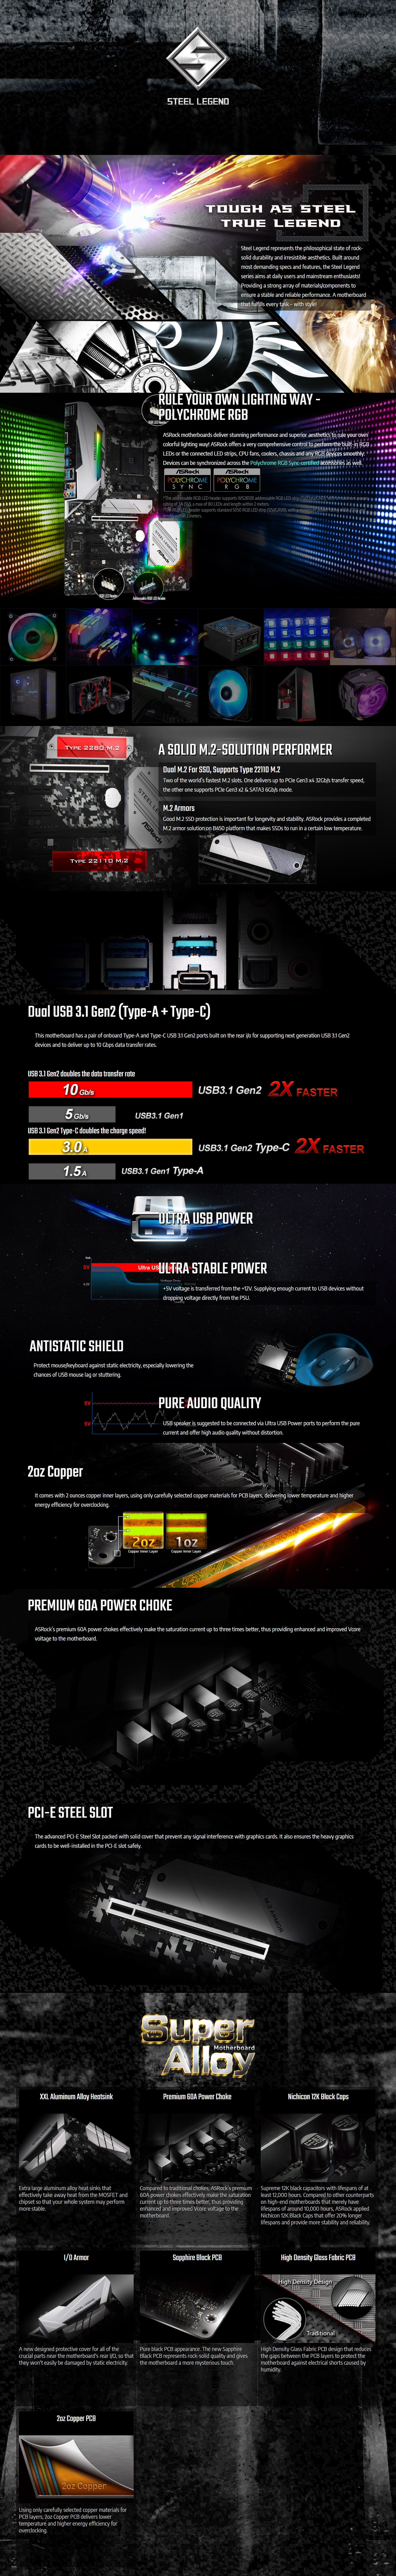 A large marketing image providing additional information about the product ASRock B450 Steel Legend AM4 ATX Desktop Motherboard - Additional alt info not provided